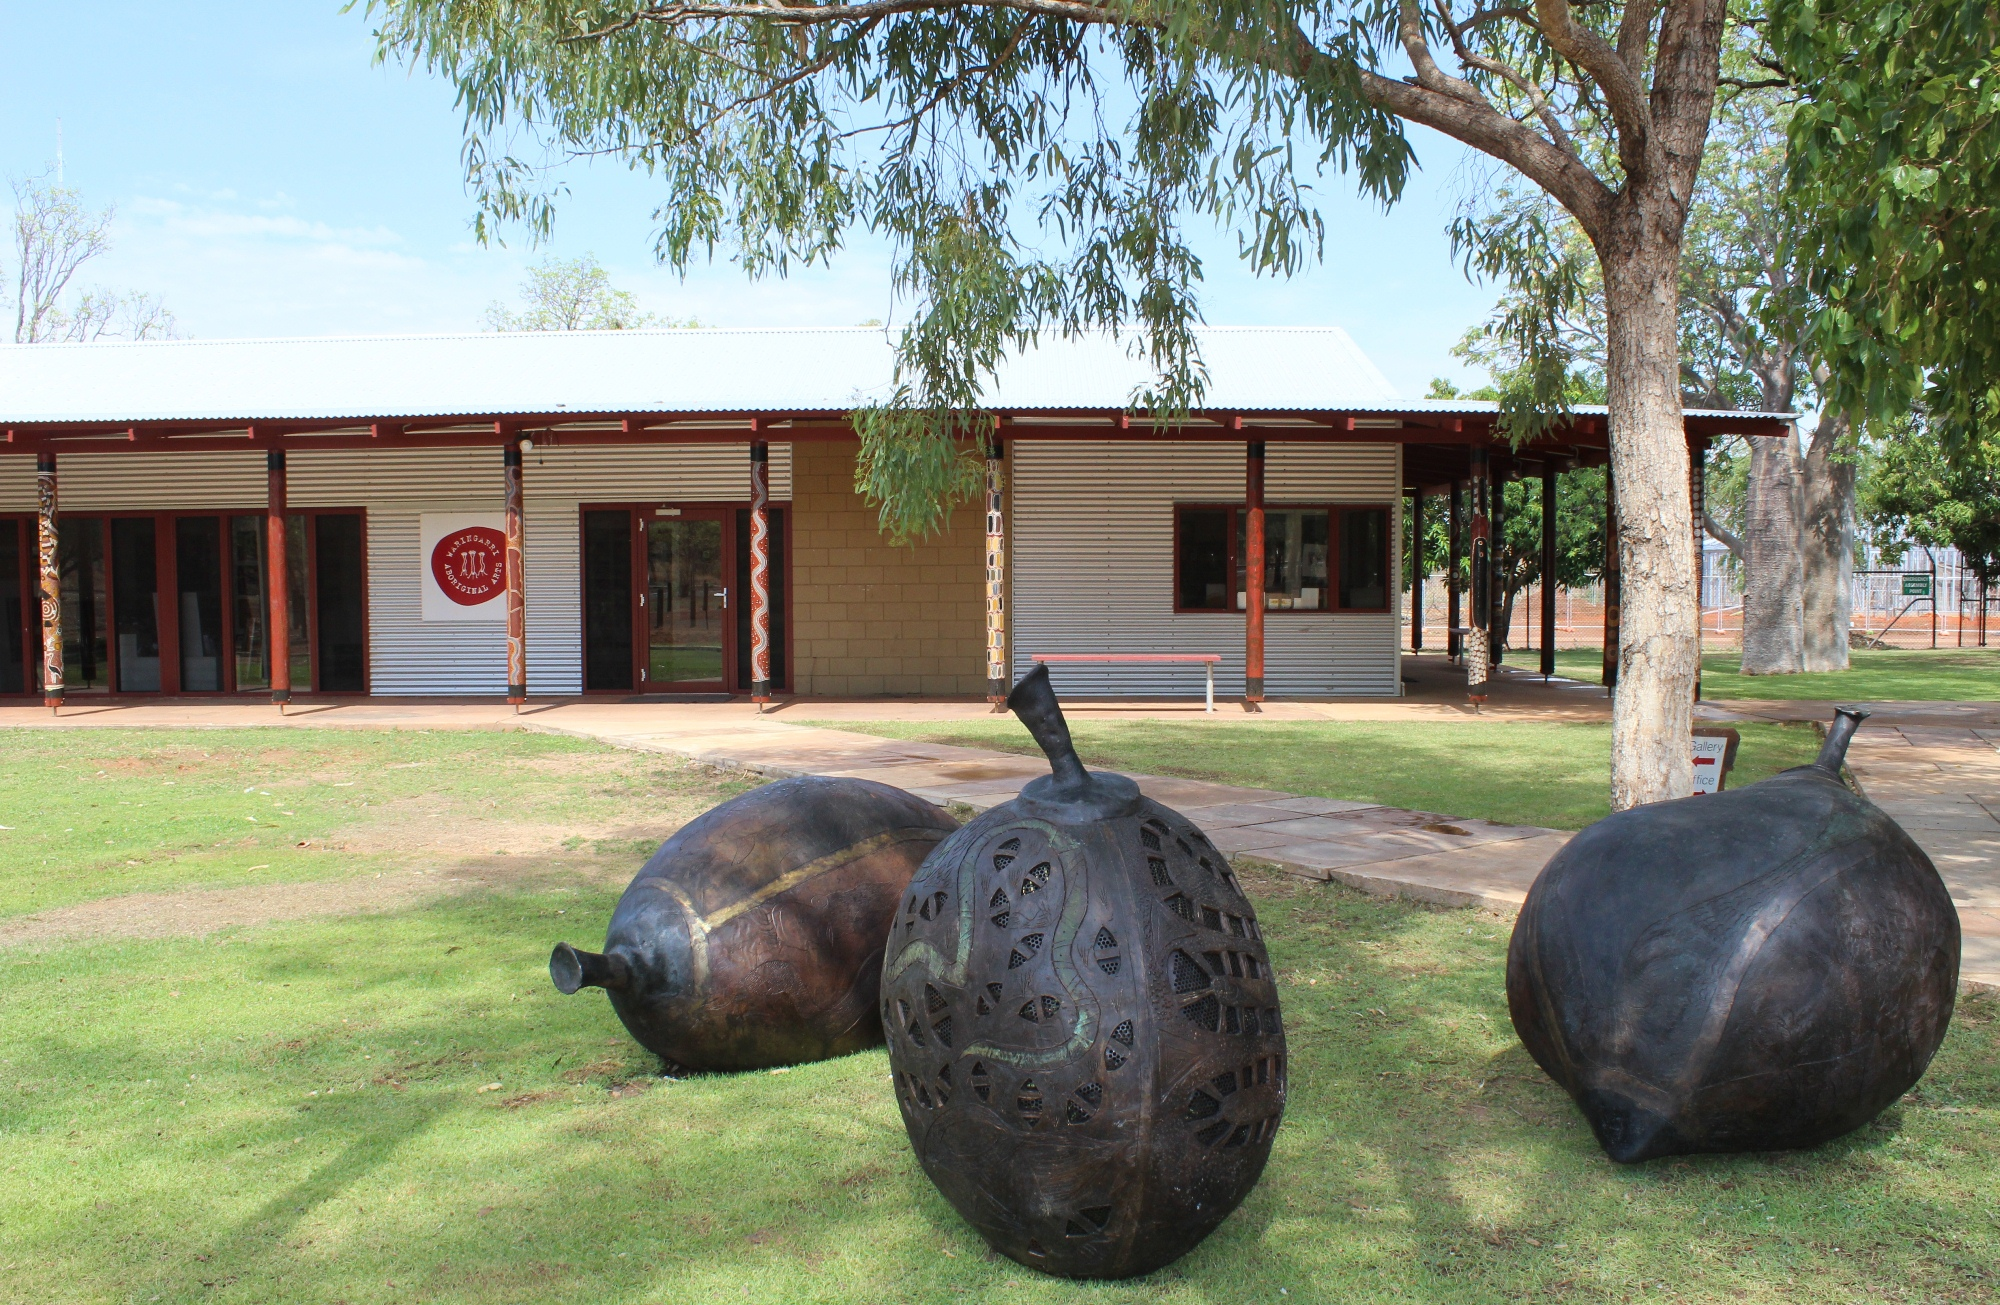 External view of Waringarri Aboriginal Arts Centre with bronze boab nut sculptures. © Waringarri Aboriginal Arts